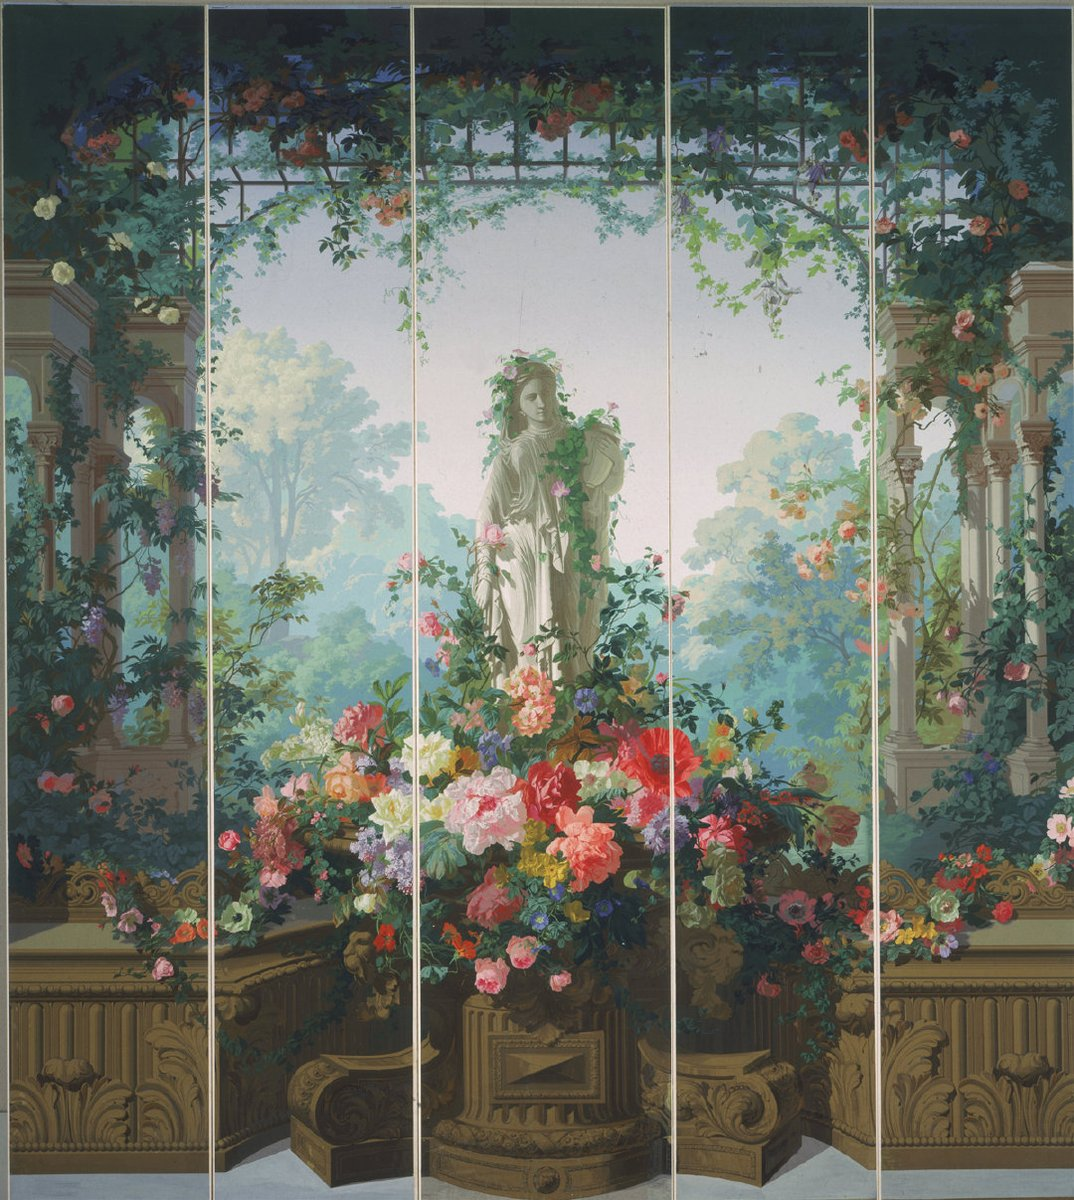 """Garden of Armida wallpaper, 1854. Philadelphia Museum of Art."" Édouard Muller (born on 26 September 1823 in Mulhouse, France; died on 29 December 1876 in Nogent-sur-Marne, France) was a French painter and designer."